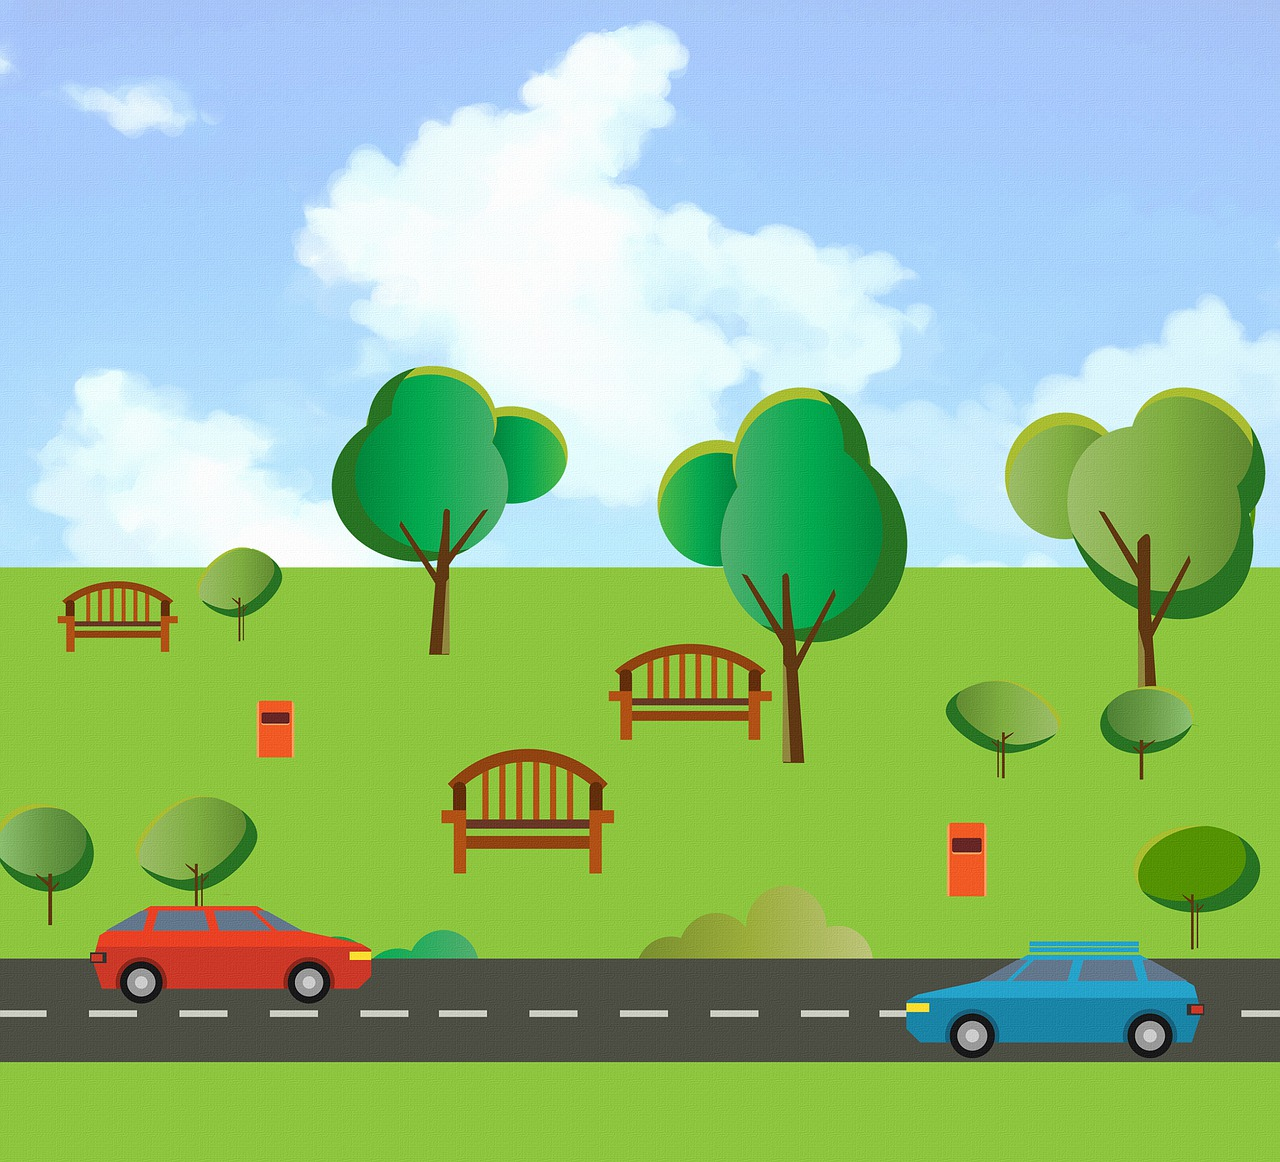 A stylized image of two cars driving on a road in front of a green park with trees